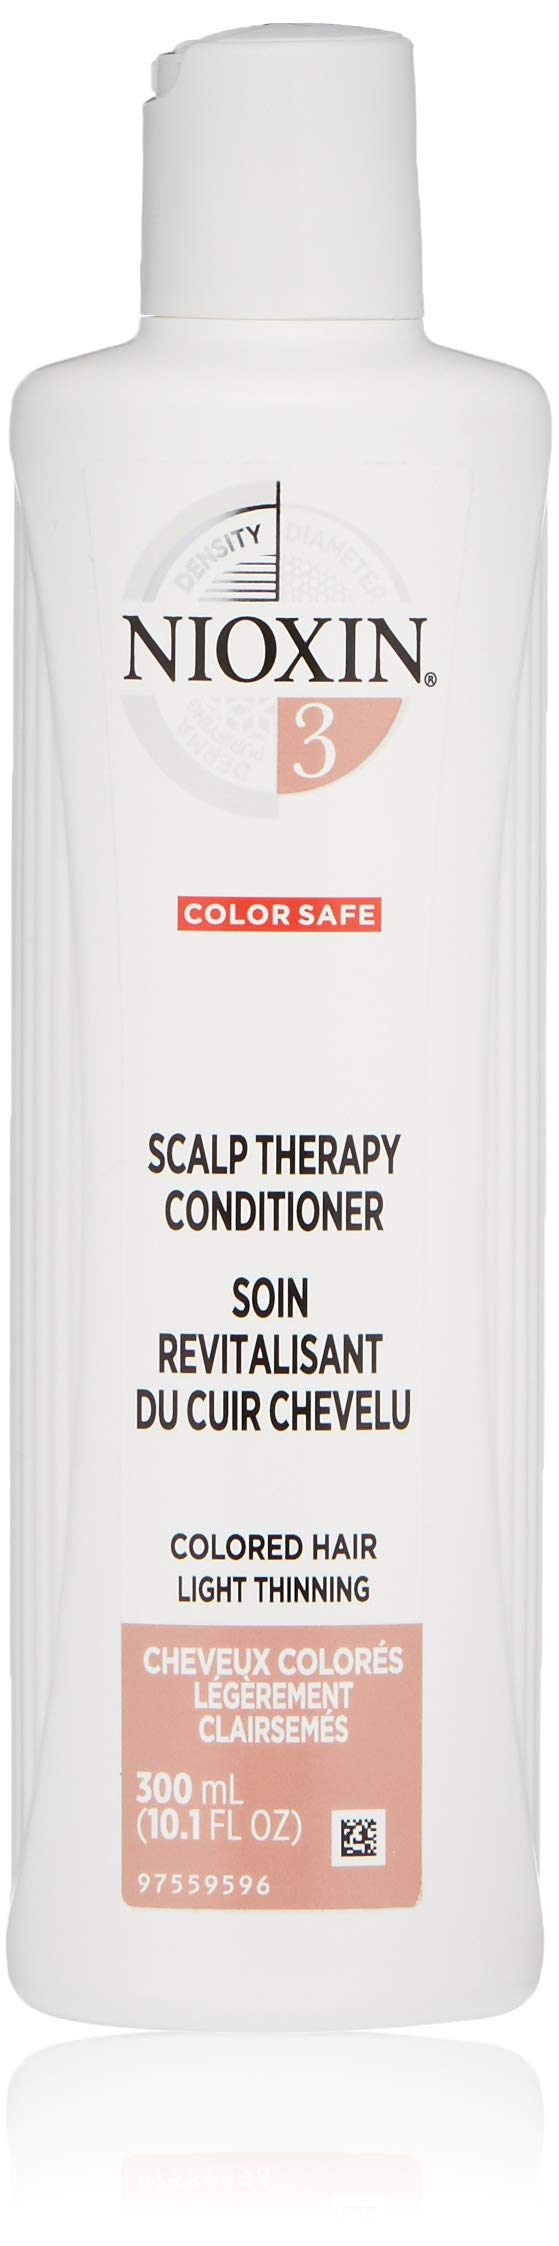 Nioxin System 3 Scalp Therapy Conditioner, 10.1 oz. by Nioxin (Image #1)